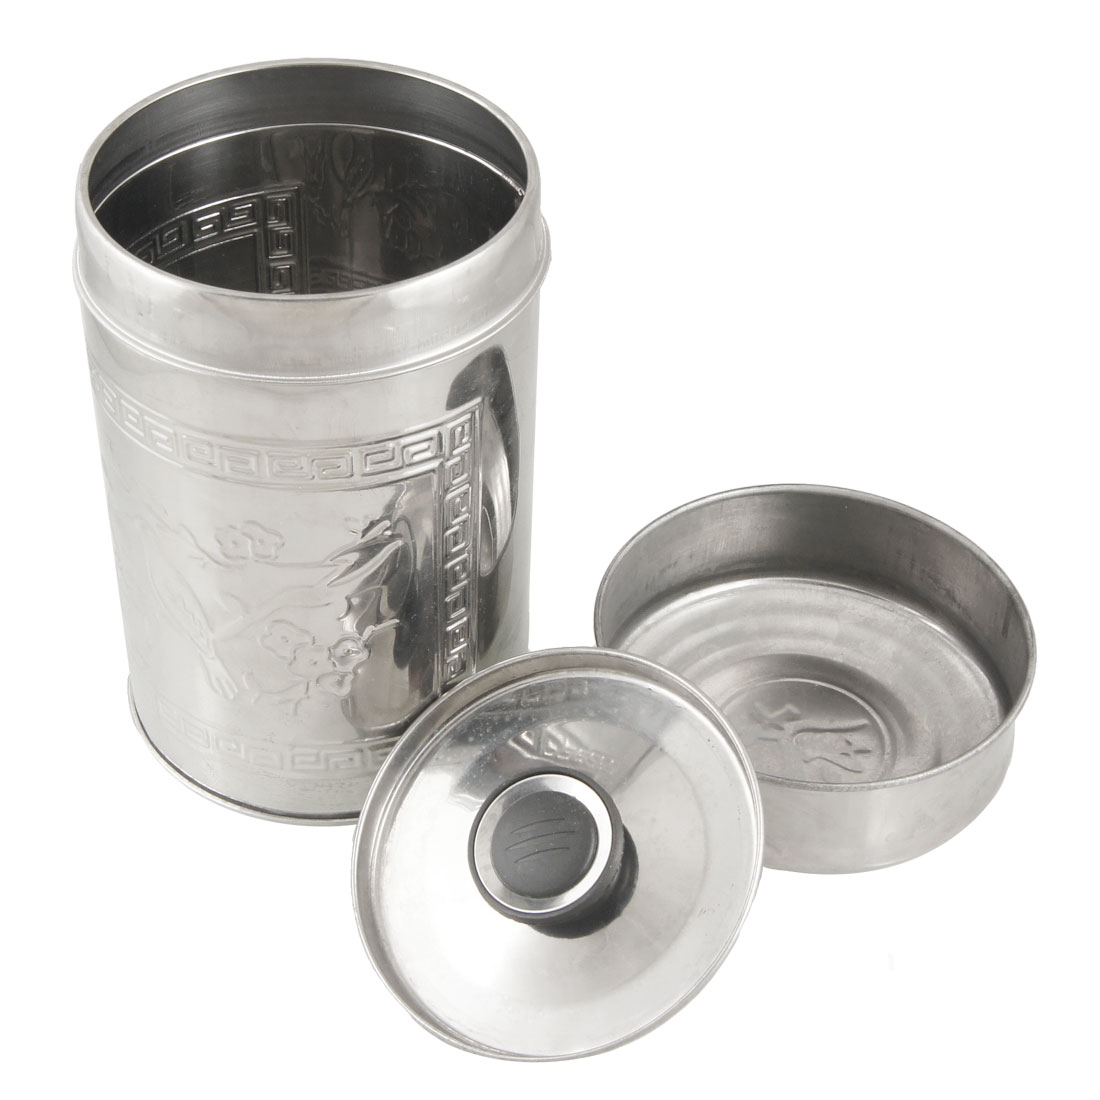 400g Capacity Floral Bird Pattern Stainless Steel Tea Tin Canister Silver Tone